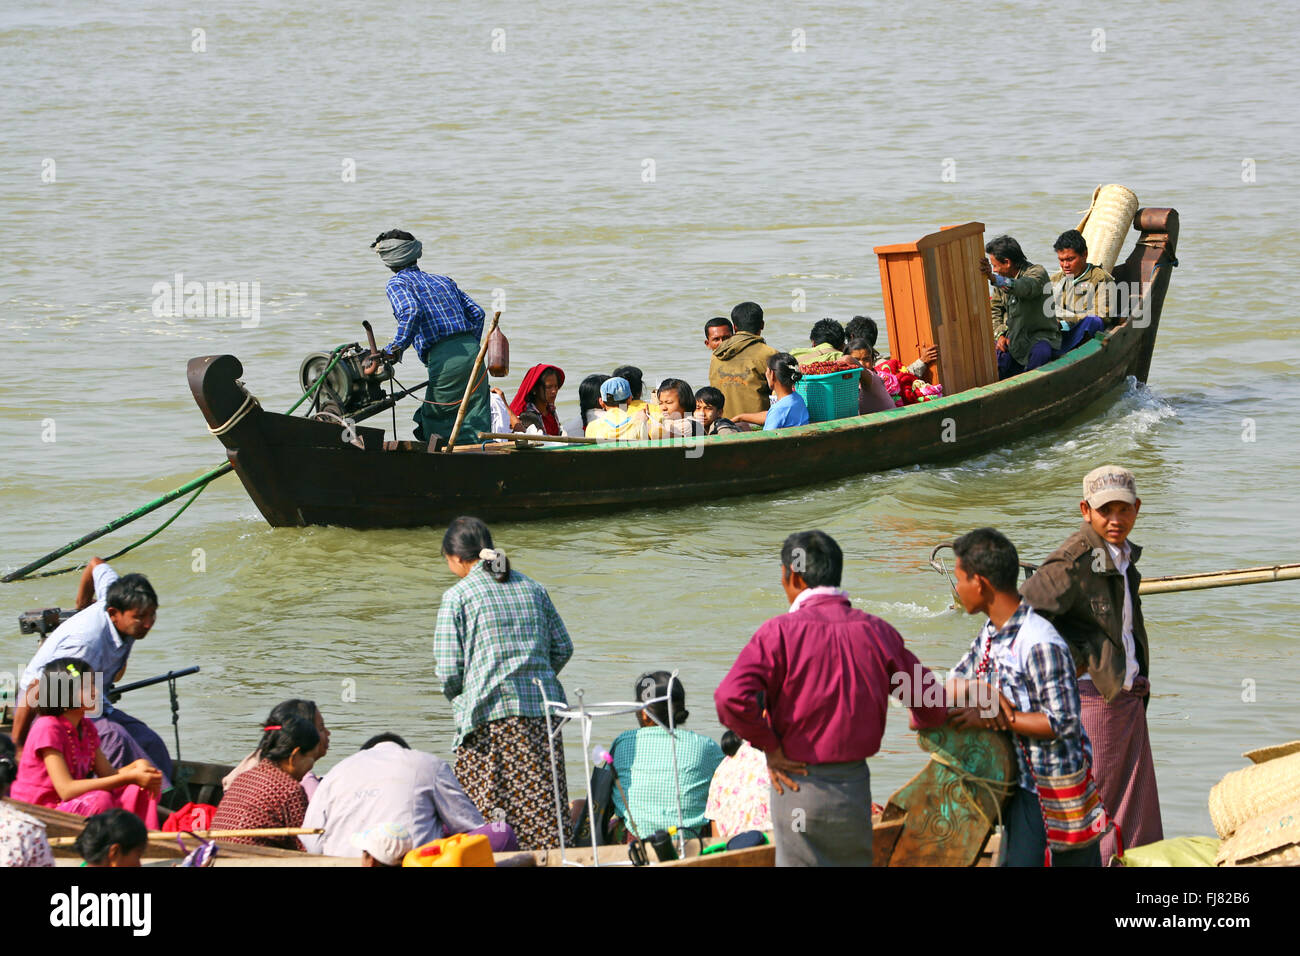 People loading and unloading ferry boats on the Ayeryarwaddy River in Old Bagan, Bagan, Myanmar (Burma) - Stock Image